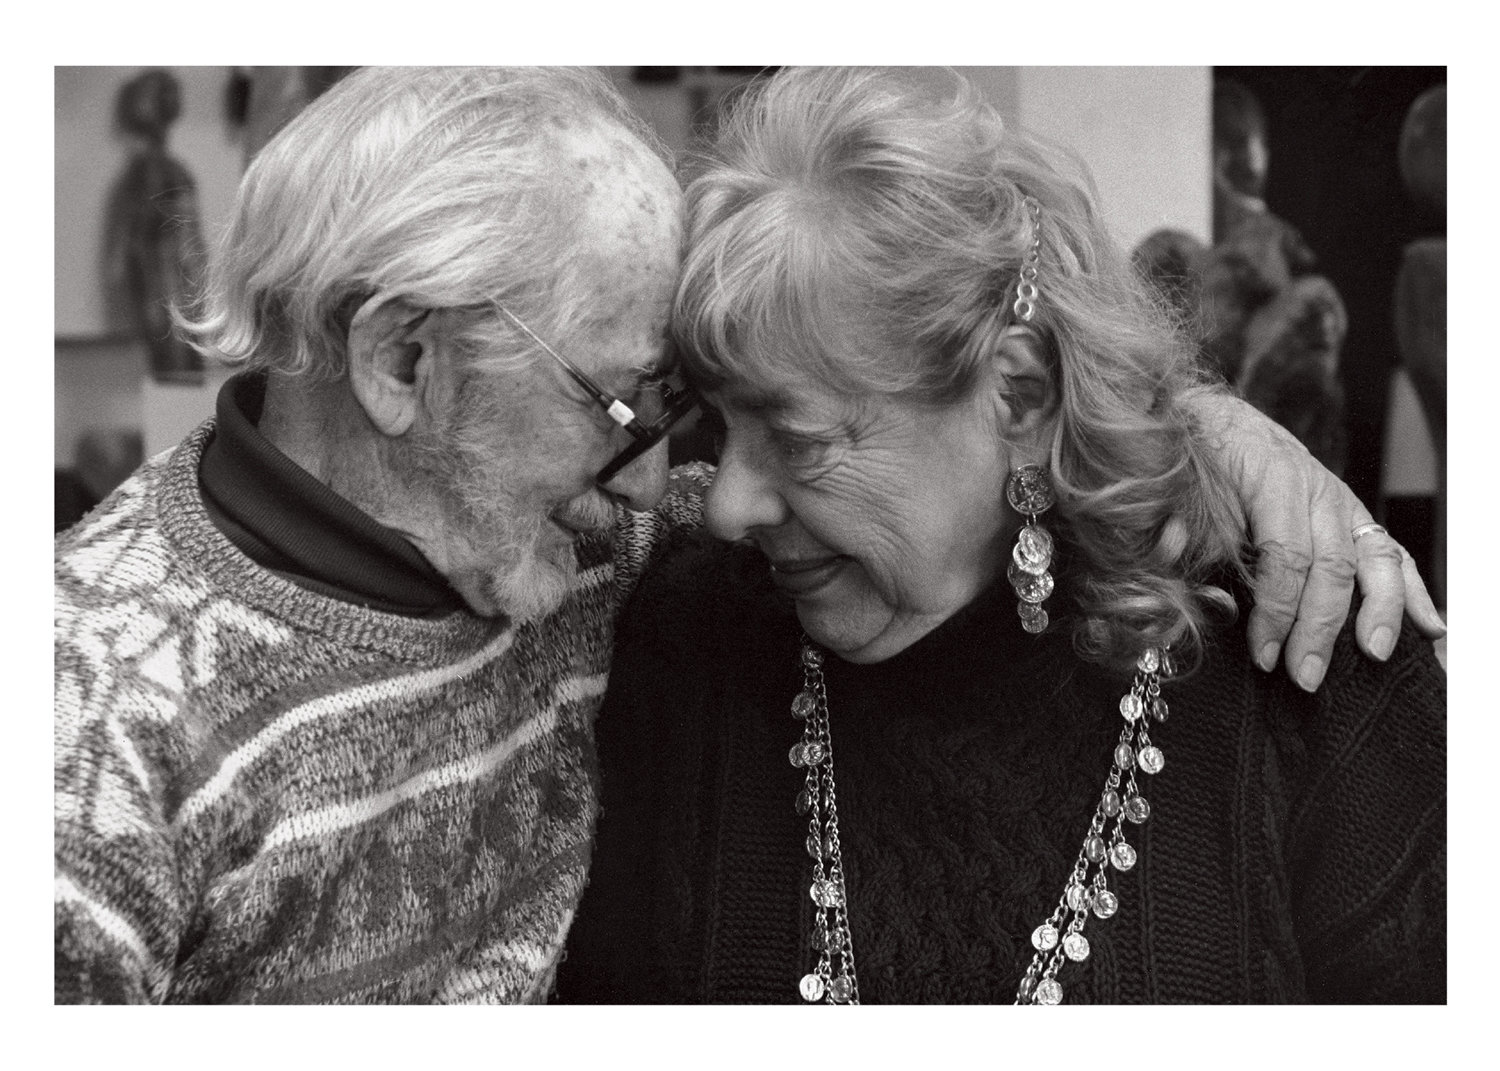 Bernie and Honey, artists who care as much about each other as they do their work, warmly embrace each other for a portrait by Robert Fass, part of the series 'As Long As We Both Shall Live.'